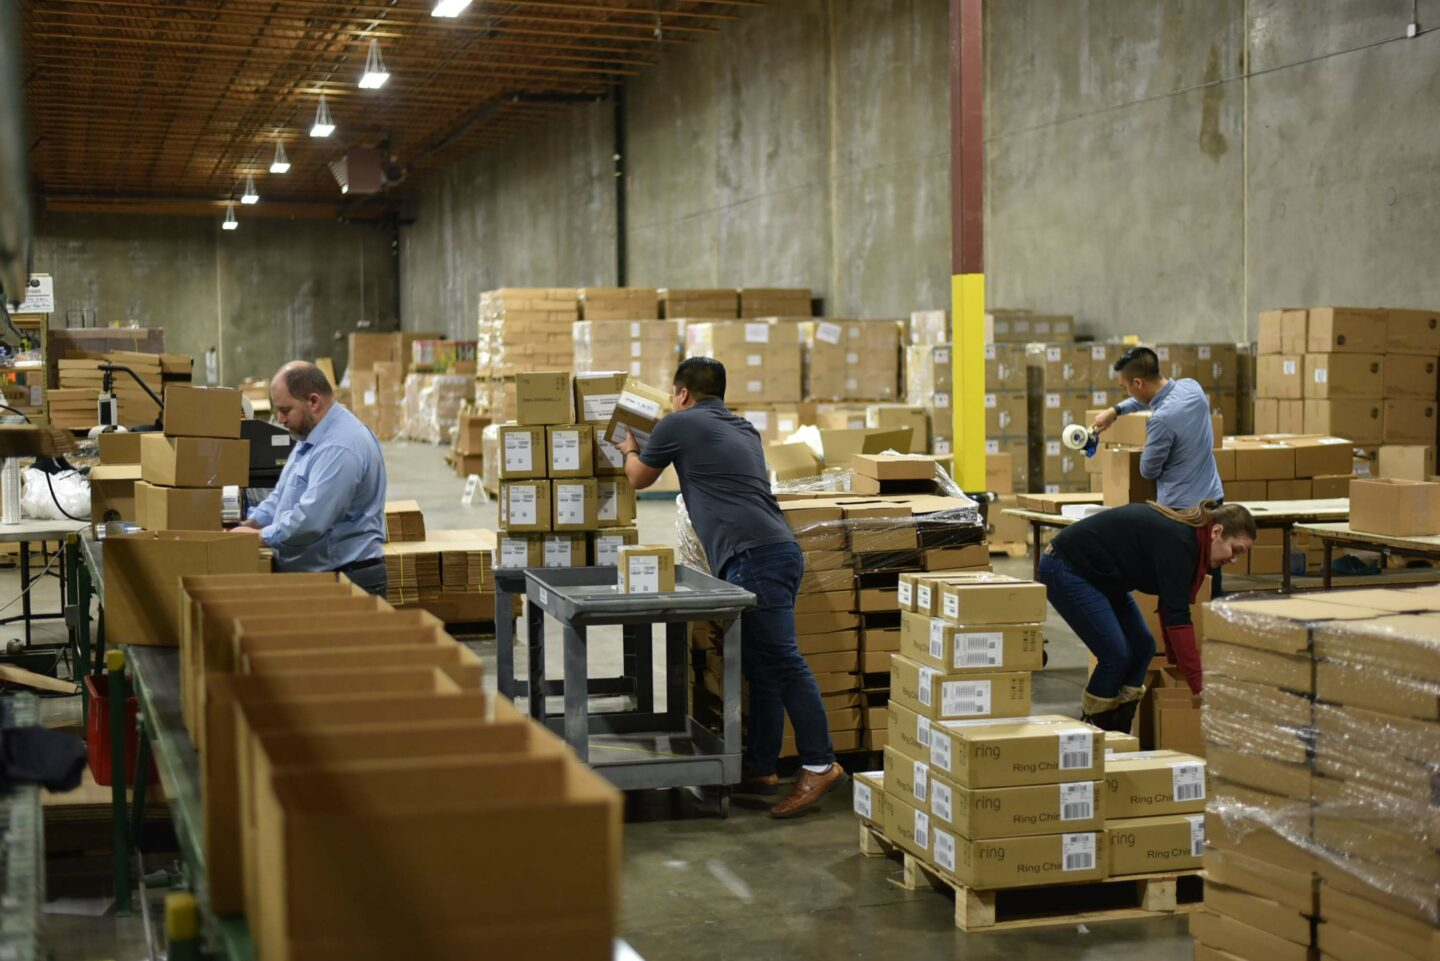 People moving boxes in warehouse